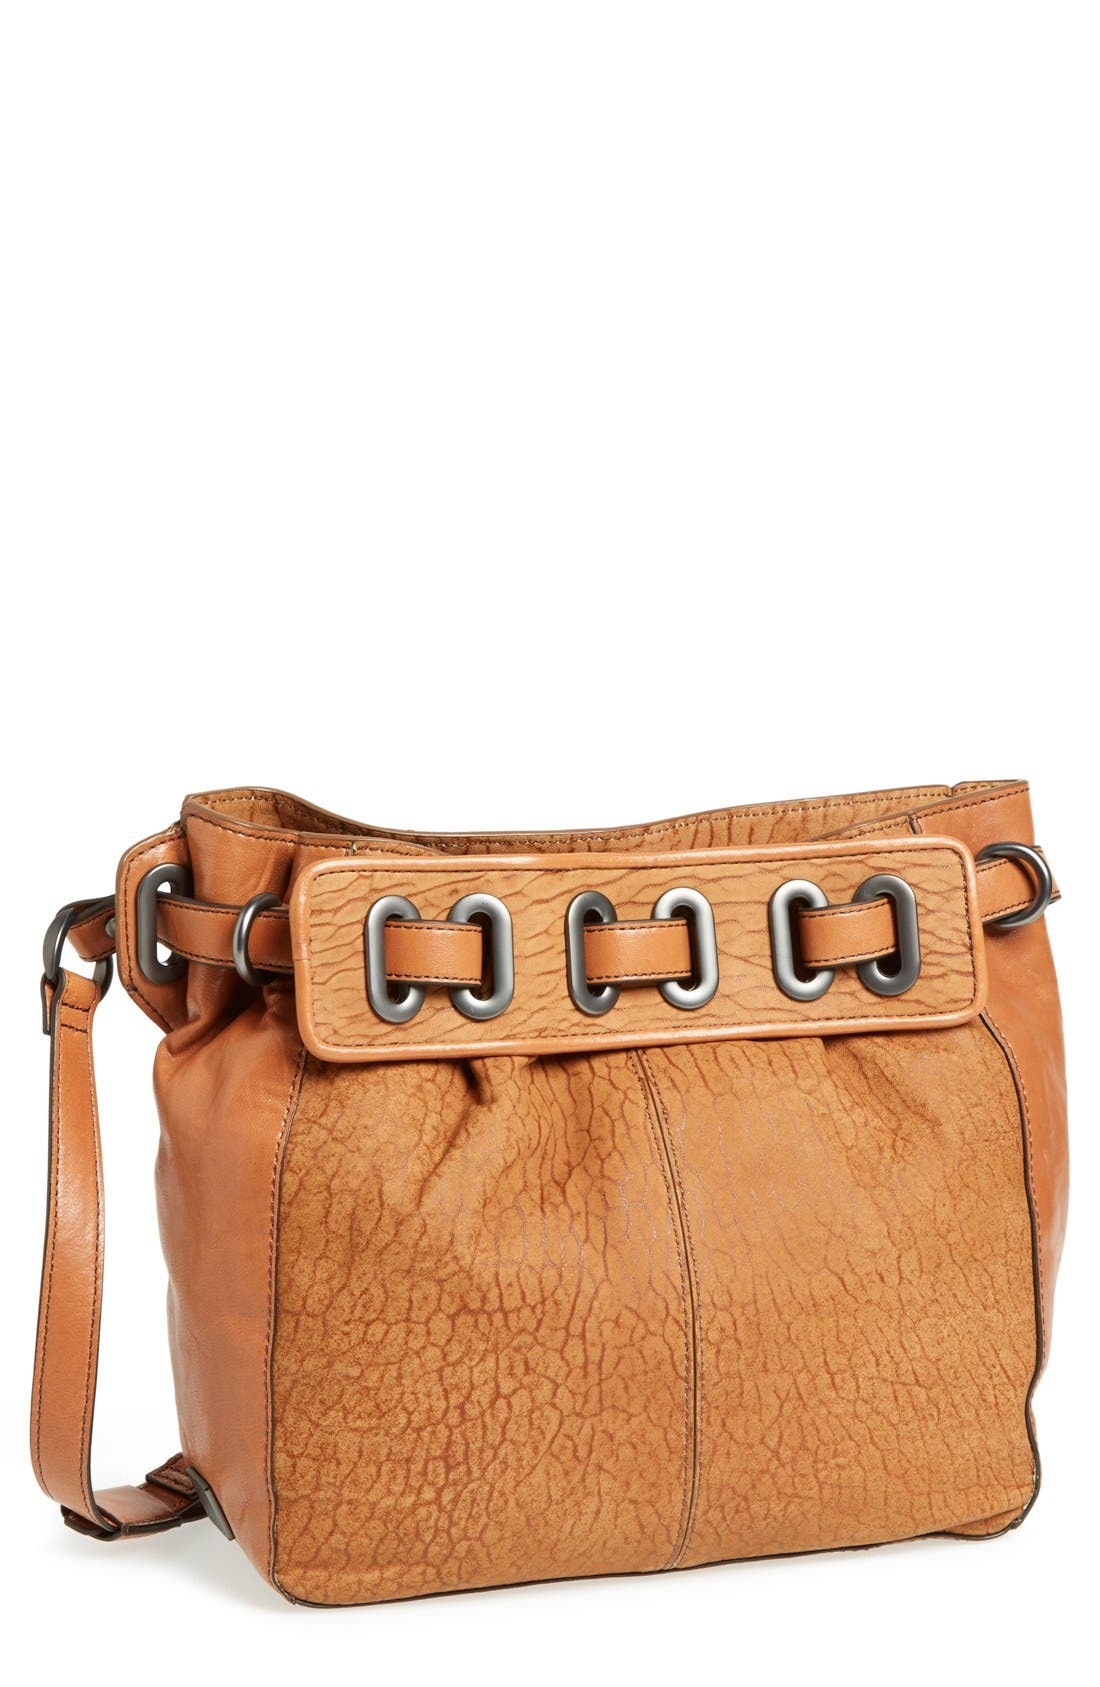 Main Image - Kooba 'Jordyn' Crossbody Bag